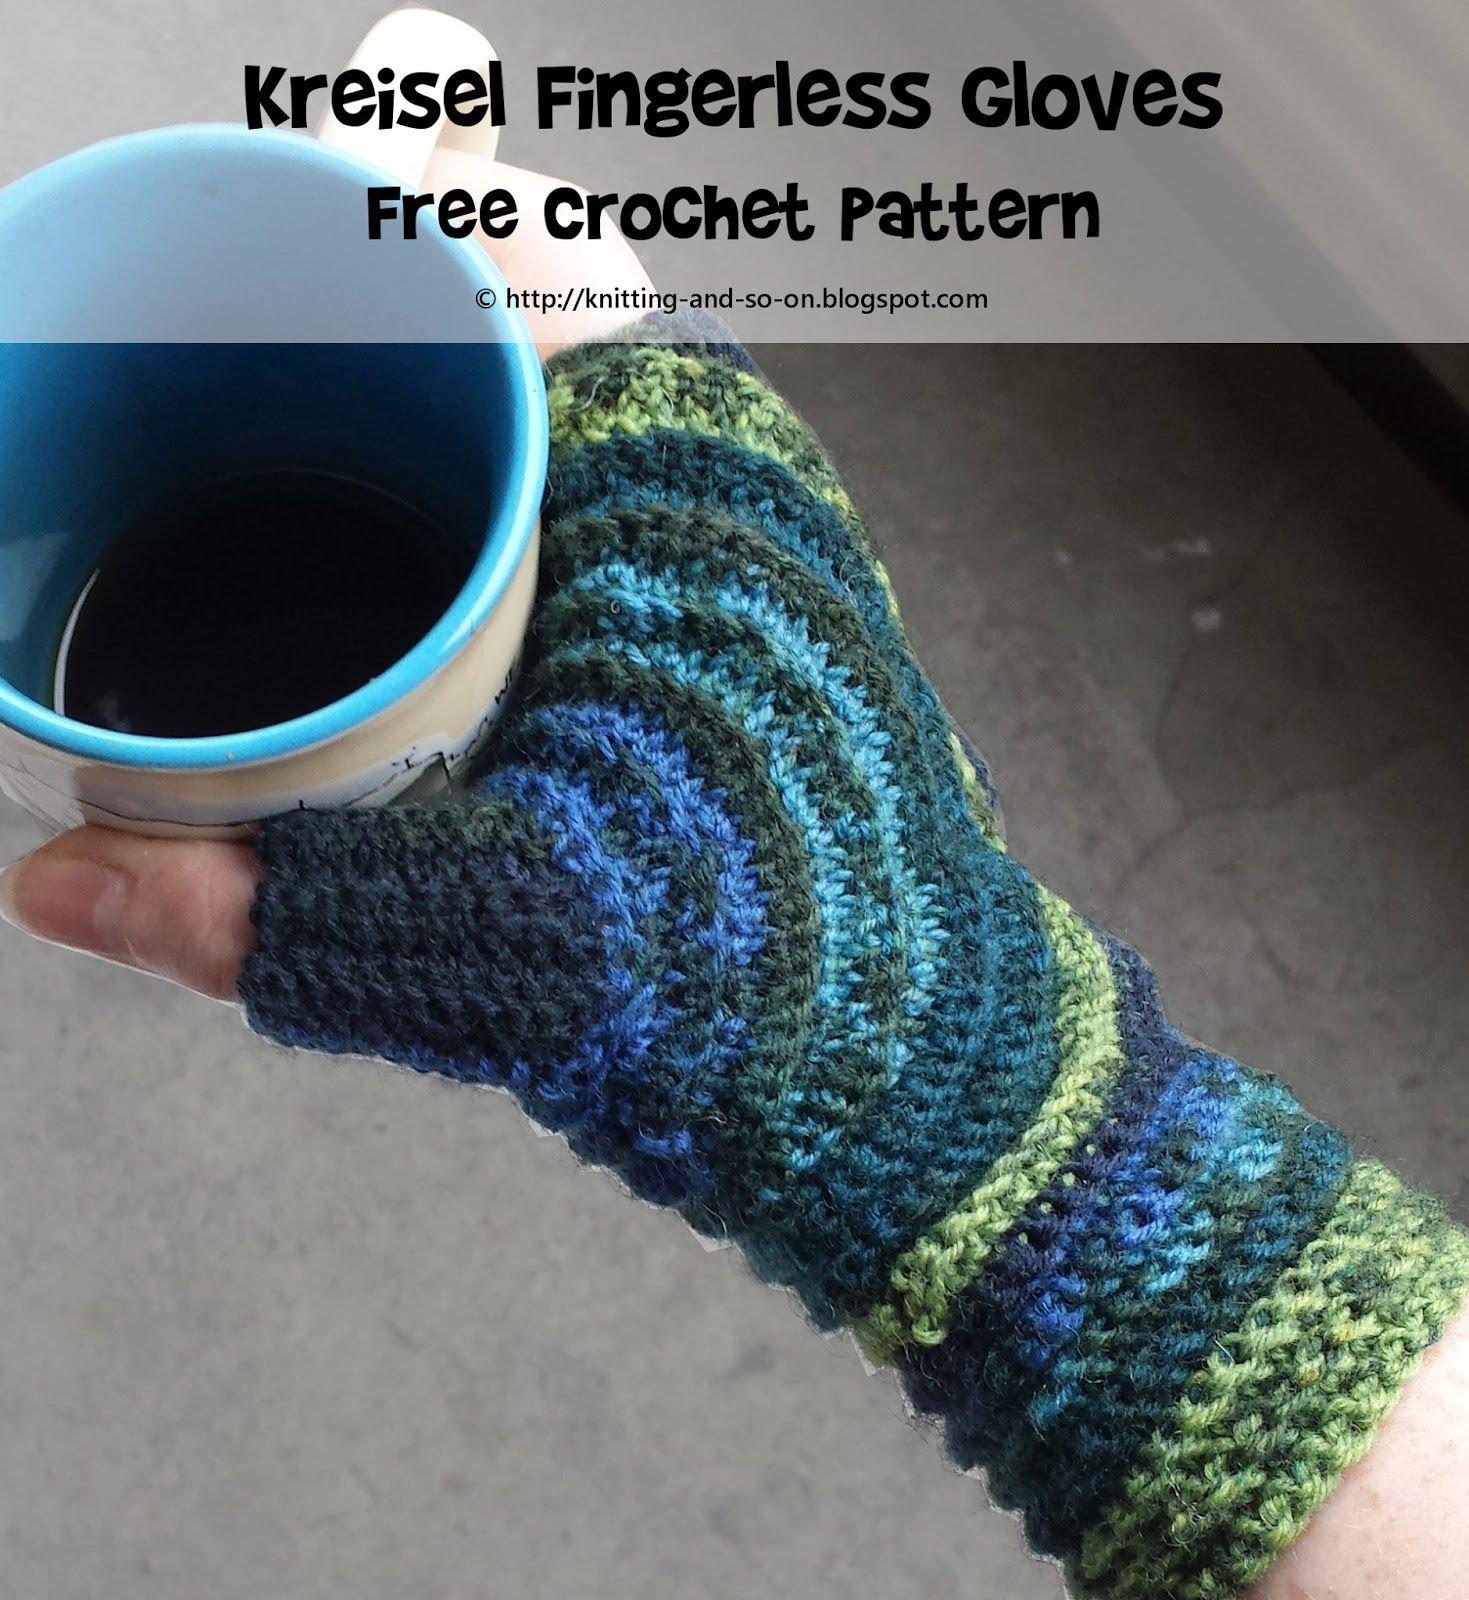 Knitting and so on: Kreisel Fingerless Gloves | Crochet Projects ...